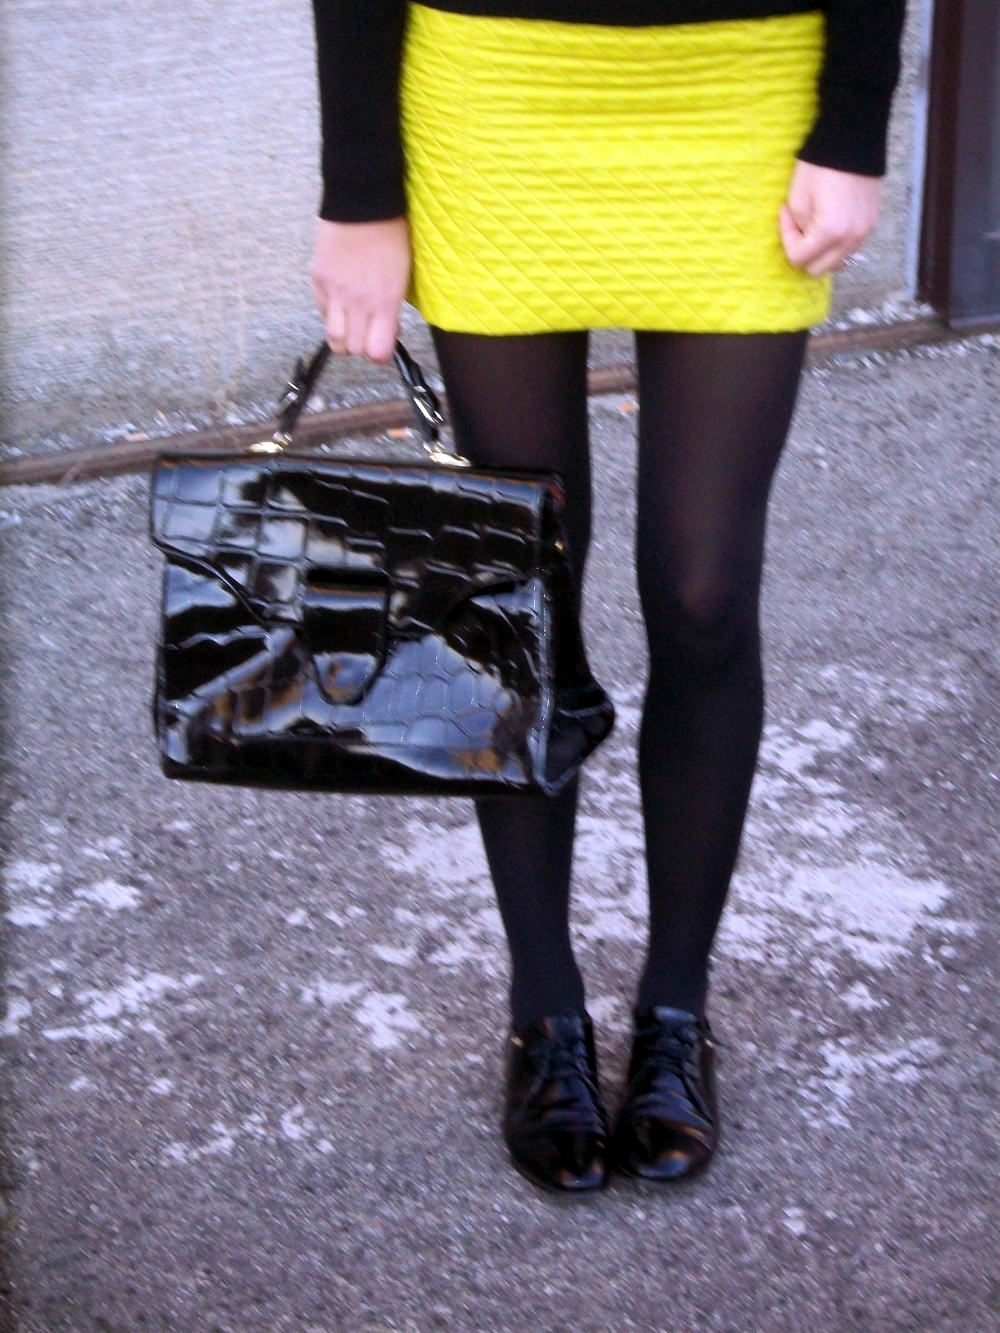 H&M SWEATHER BLACKY DRESS TOMMY HILHFIGER SHOES VINTAGE BAG